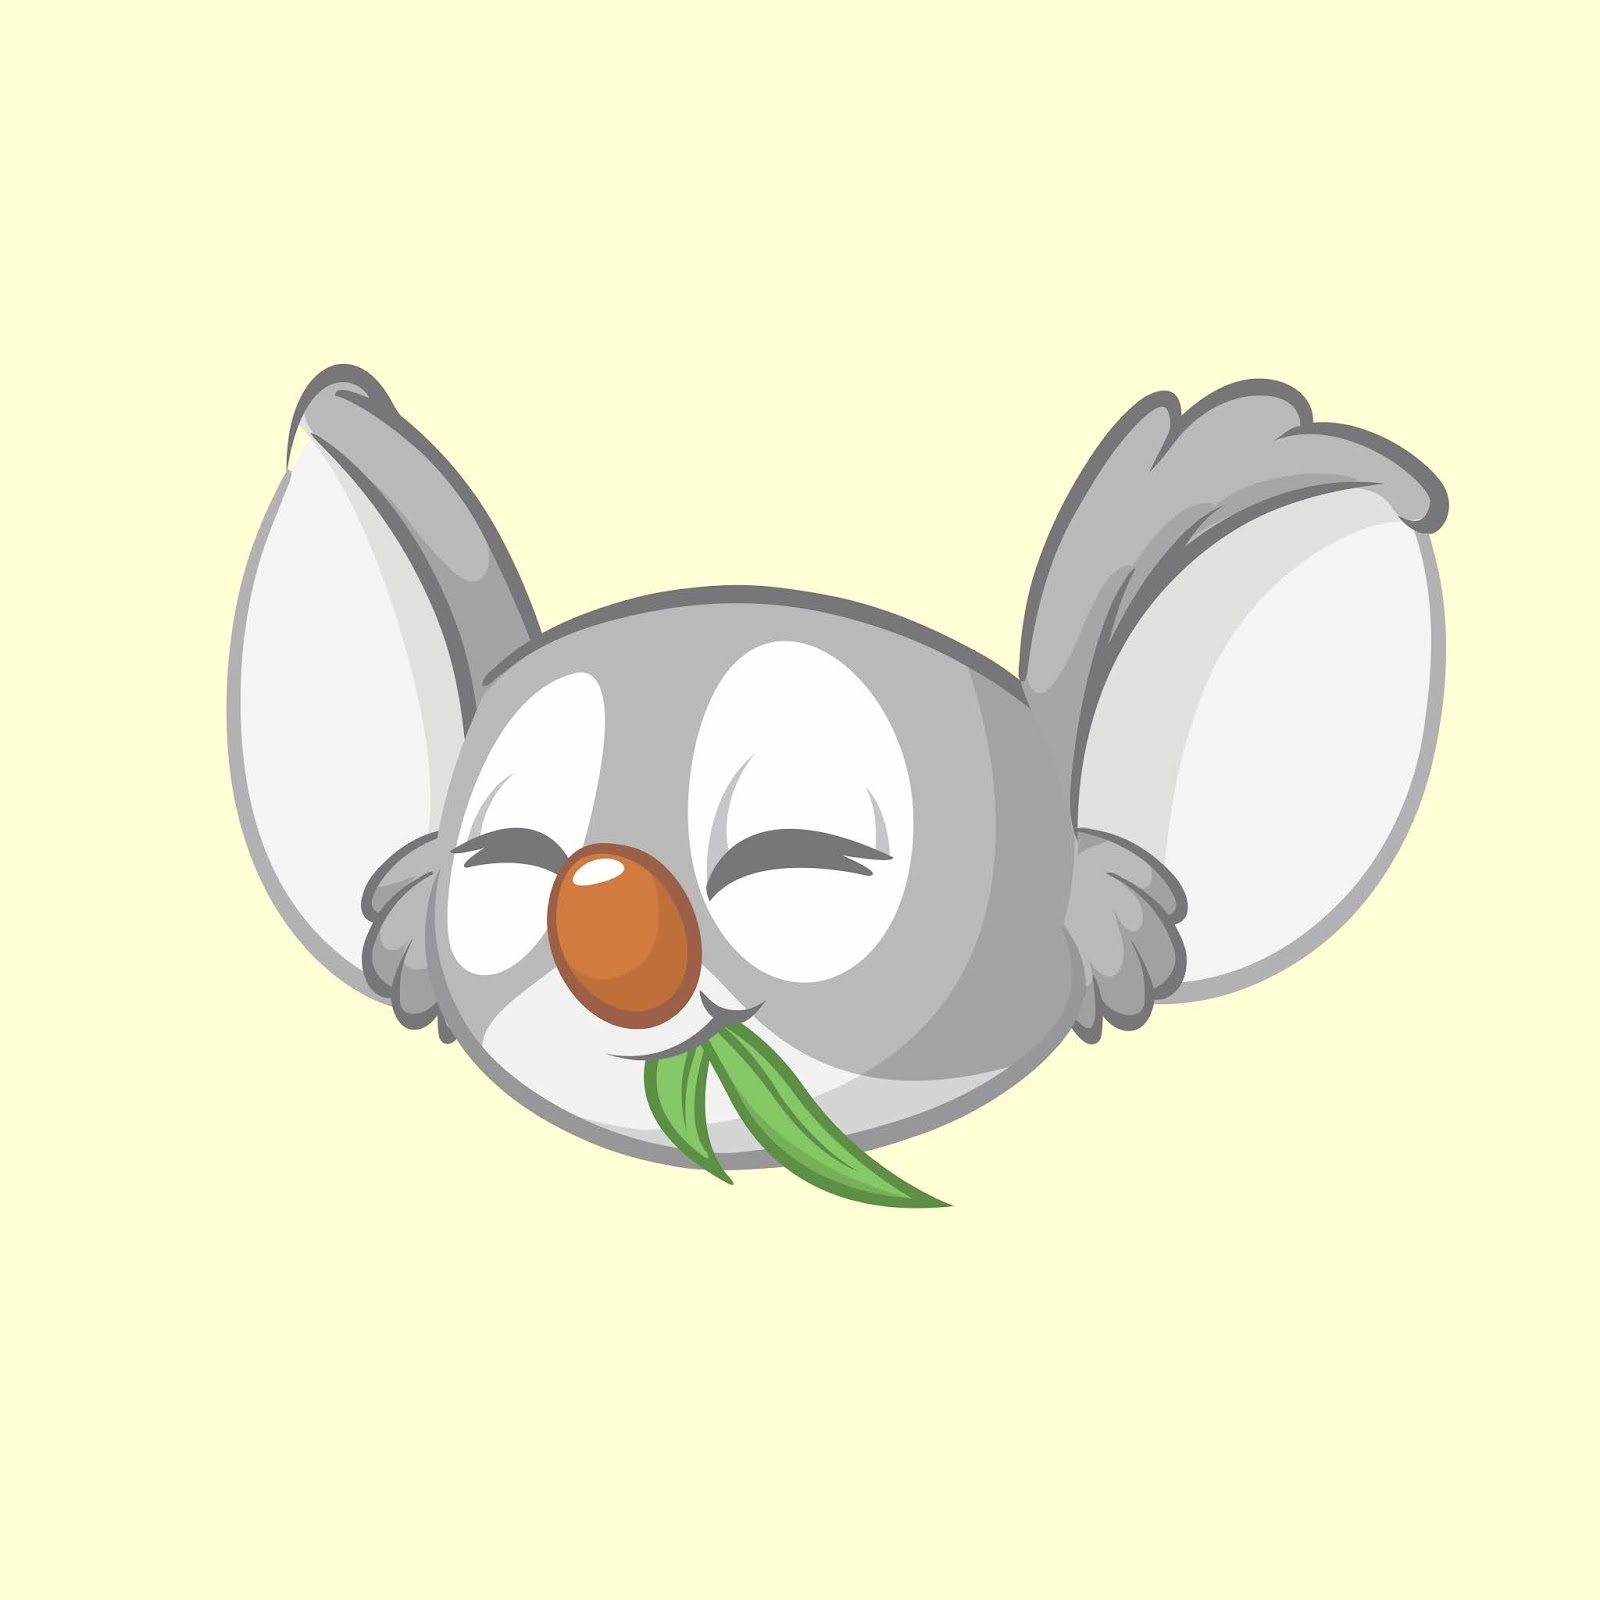 Koala Free Download Vector CDR, AI, EPS and PNG Formats